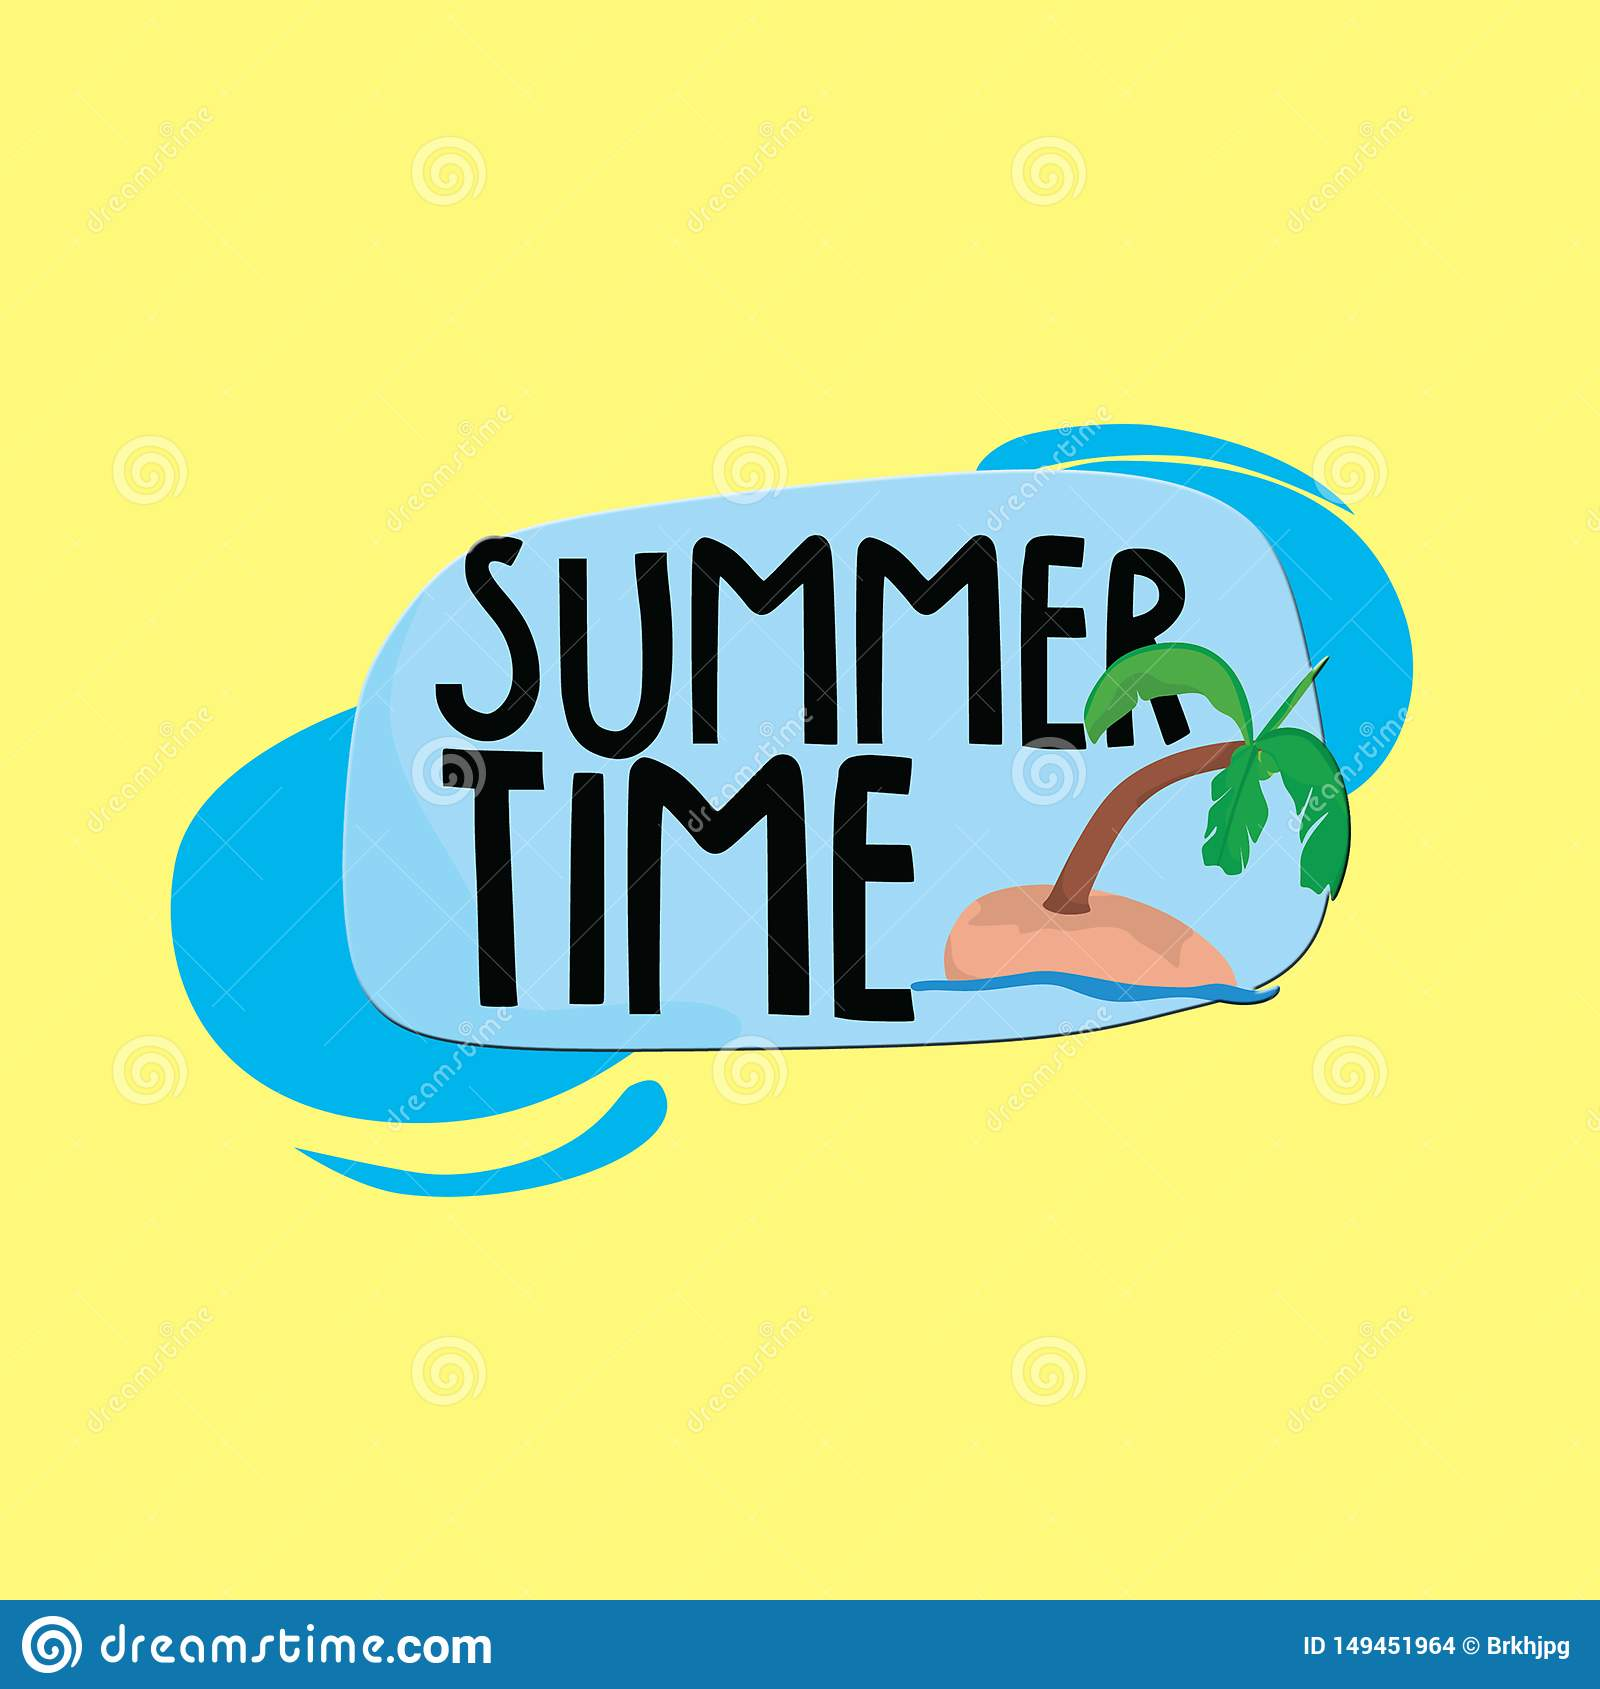 Summer time title with coconut trees and yellow background